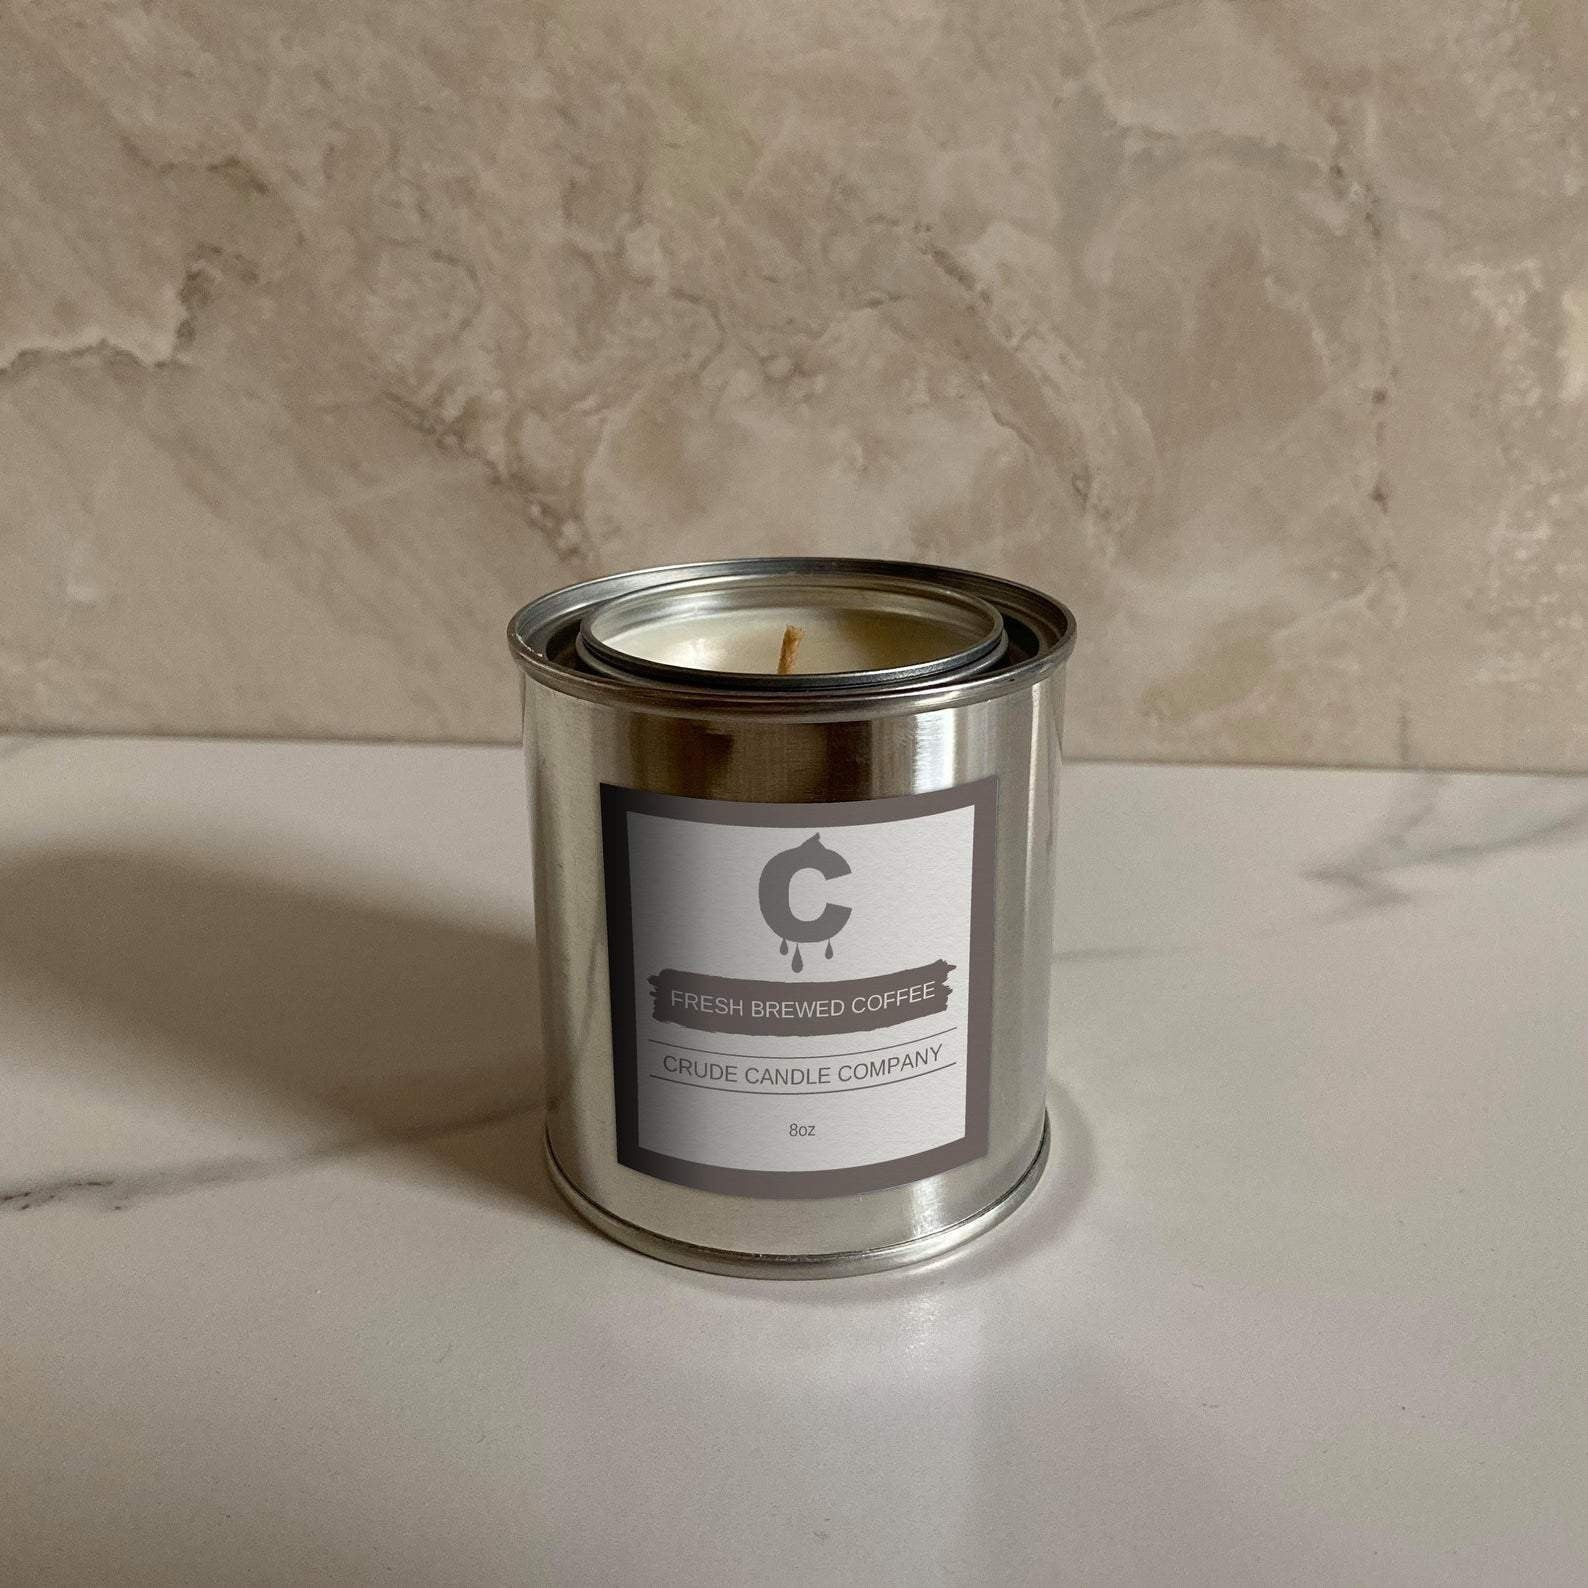 Fresh Brewed Coffee Candle - 8oz - Je Suis Bleu